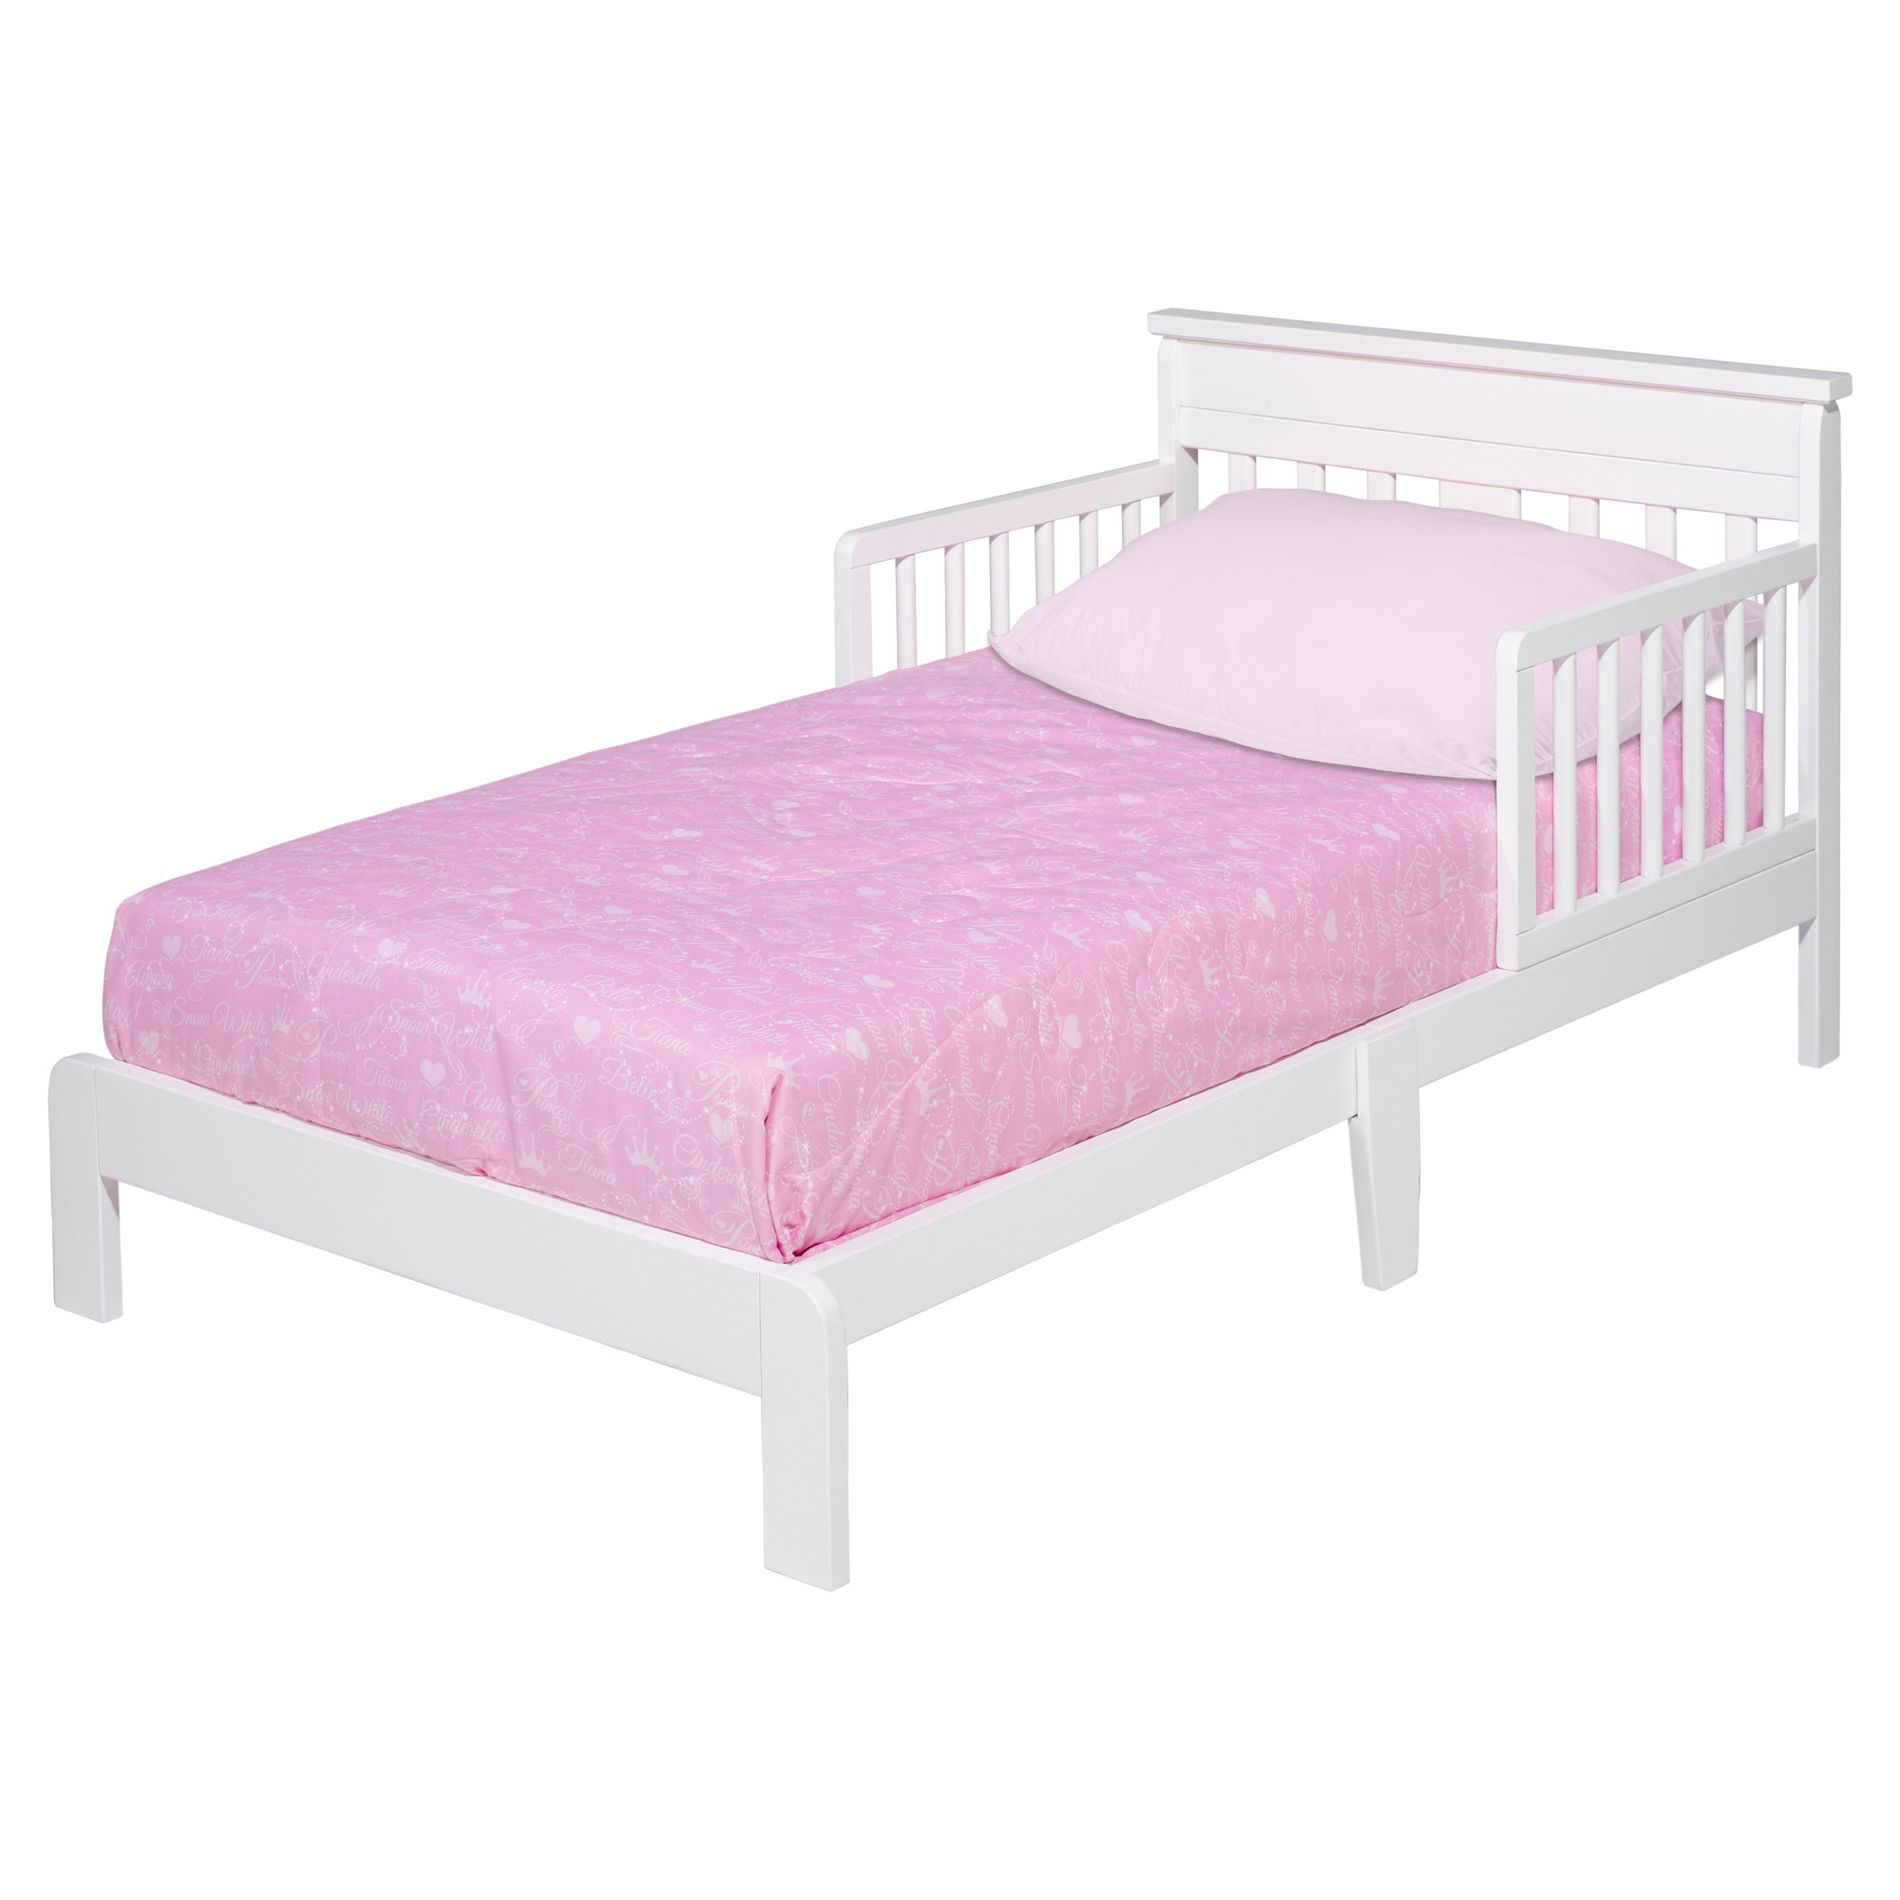 toddler chair bed inexpensive covers lasting furniture in the kids room beds